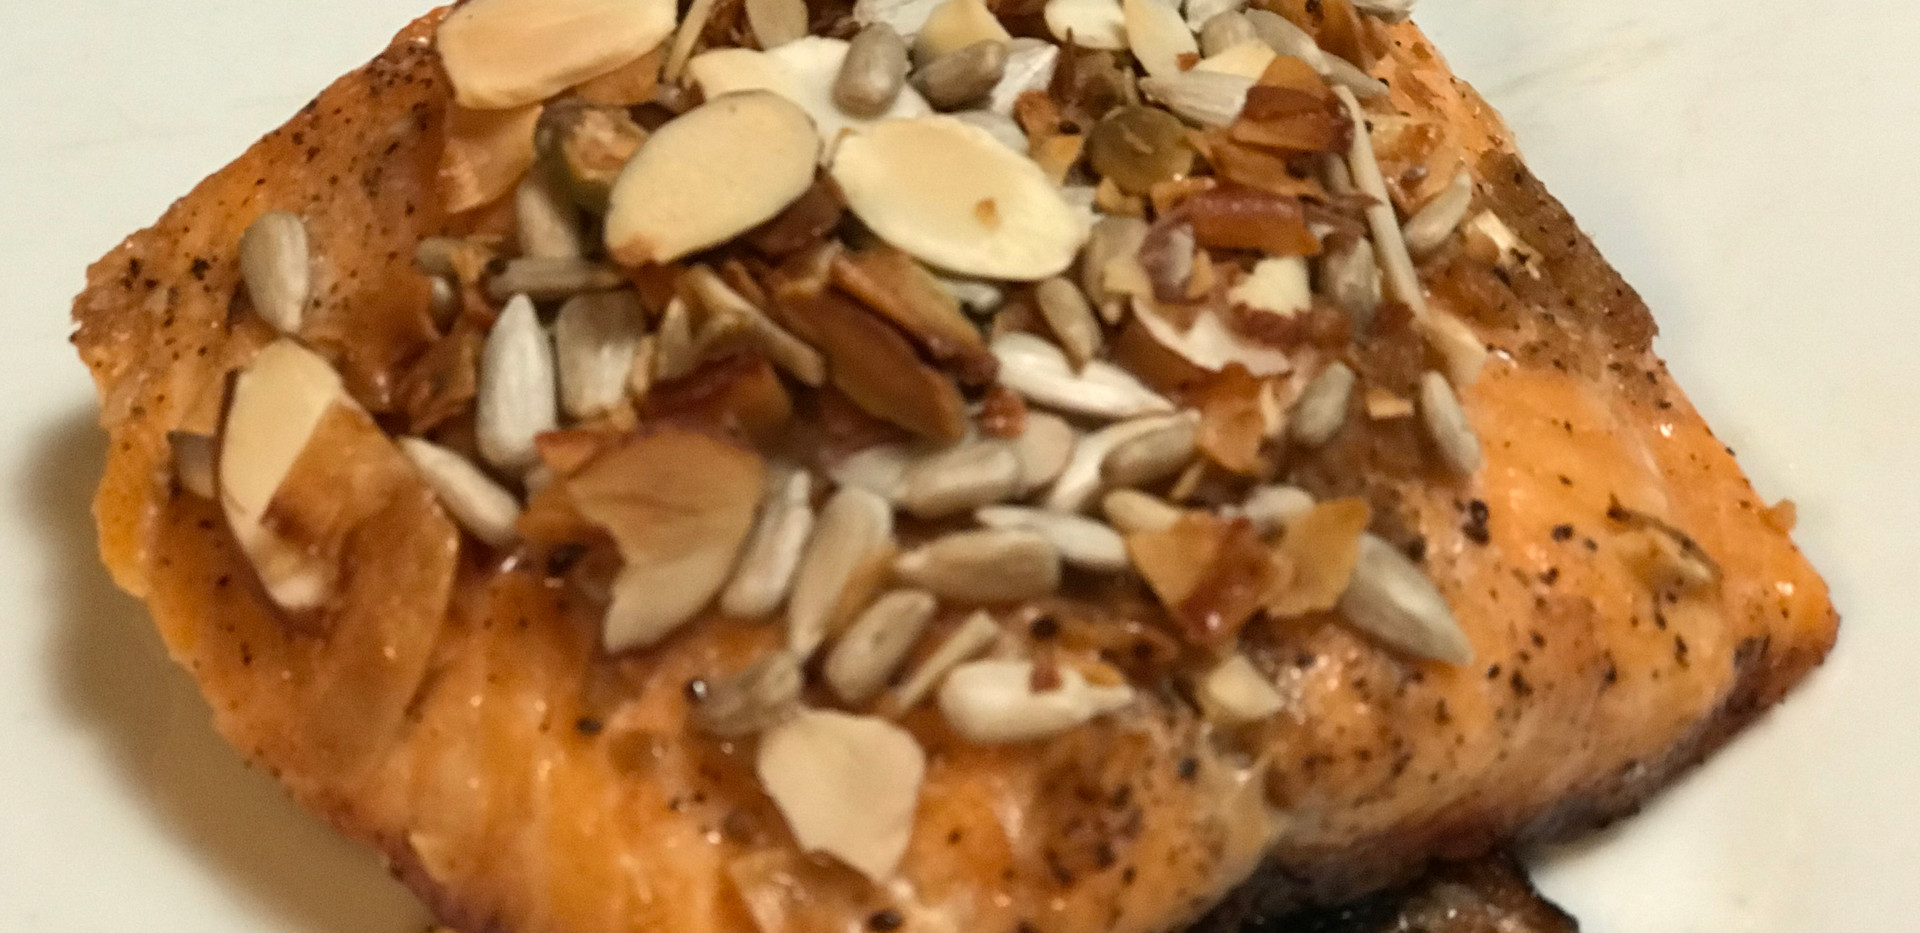 Baked Salmon with mixed nuts